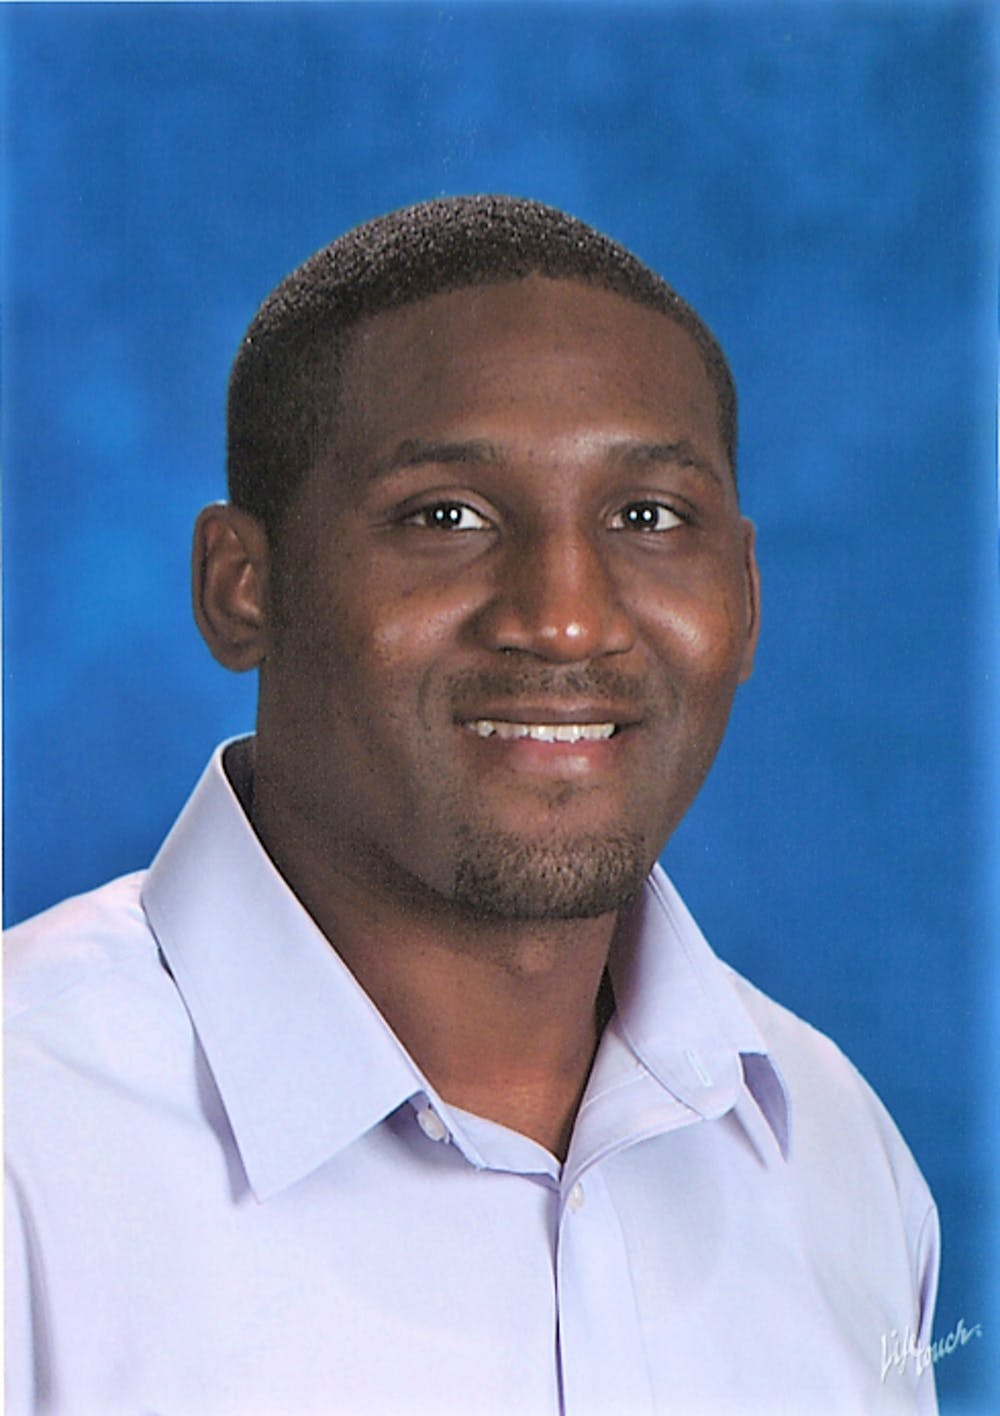 <p>Jeff Holloway, Muncie Central High School&#x27;s new athletic director, graduated from Muncie Central High School in 1994. He was on the 1993-94 boys&#x27; basketball team that competed in a semi-state game. <strong>Andy Klotz, Muncie Community Schools, Photo Provided</strong></p>